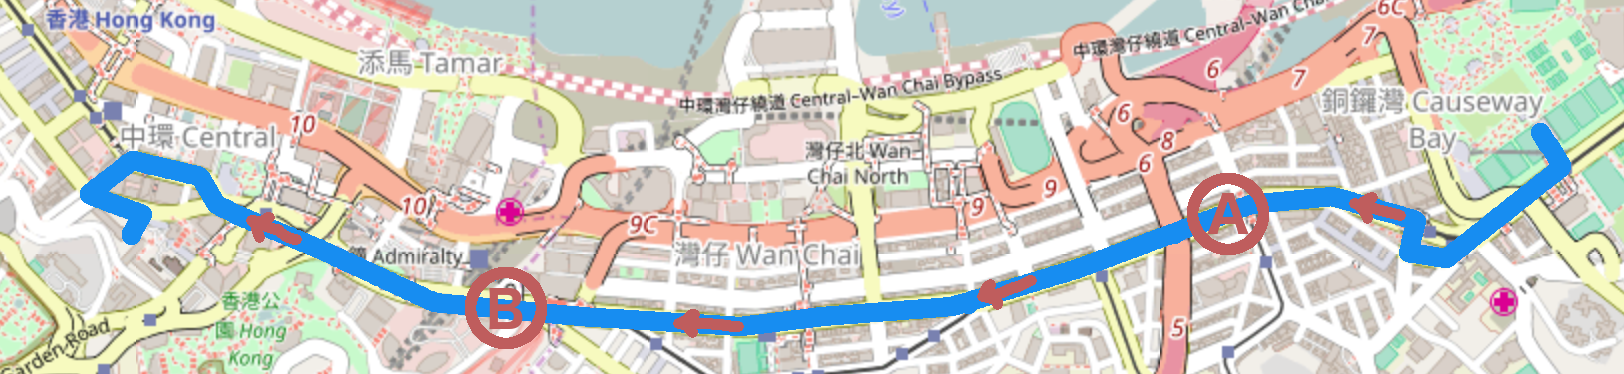 Route of the 1st of July 2006 demonstration in Hong Kong. The two points A and B indicate the location of the two counting points. Courtesy goes to Open Street Map.